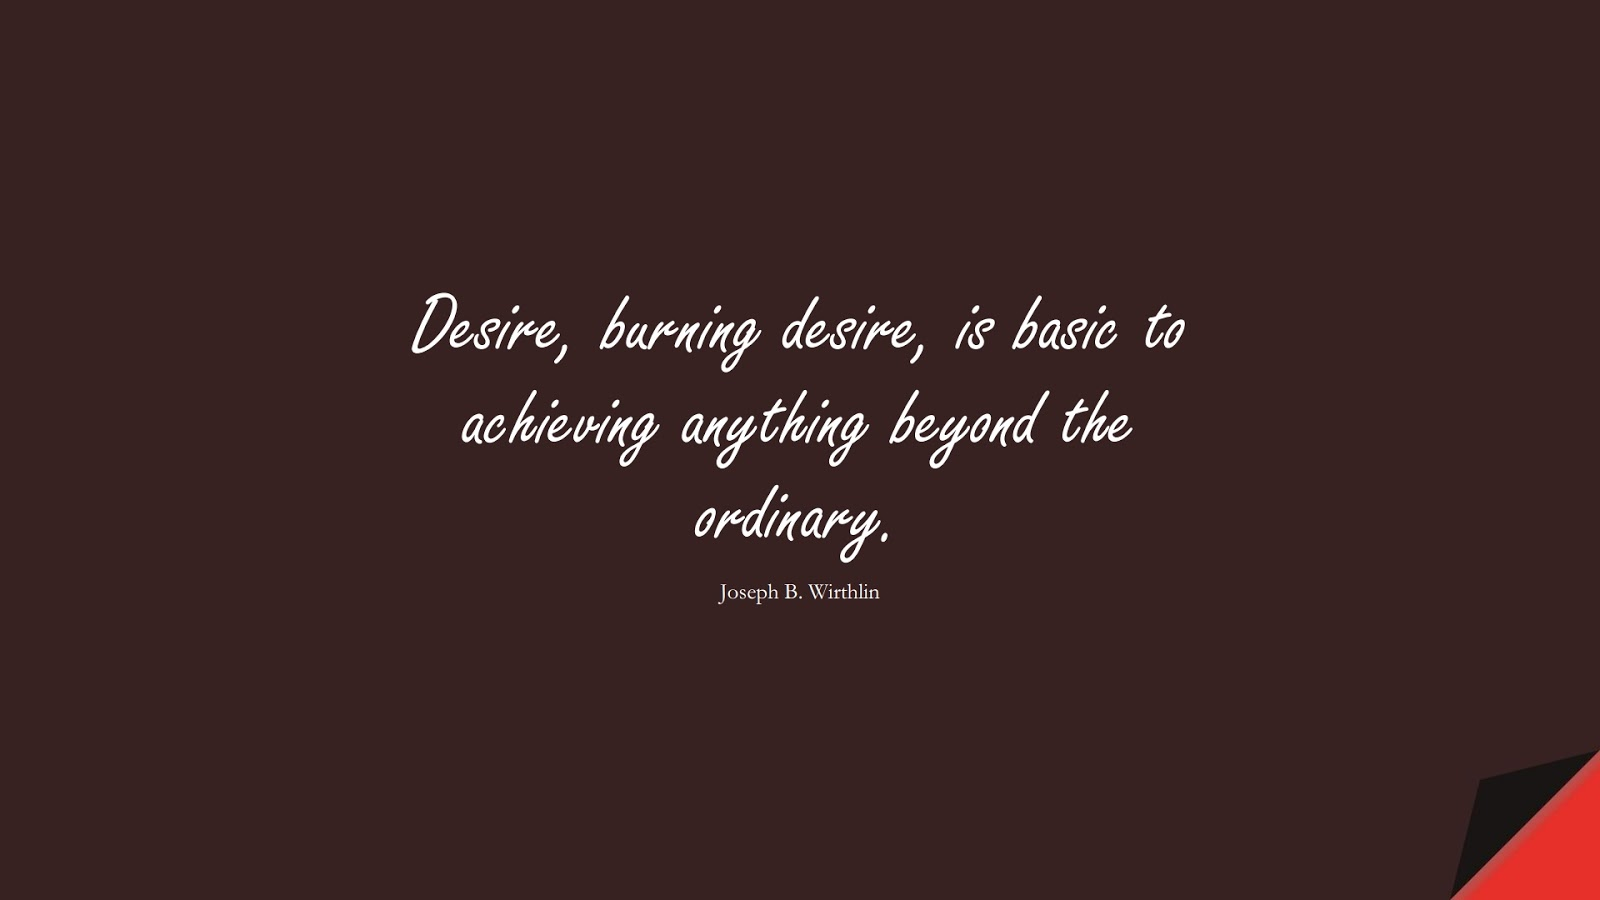 Desire, burning desire, is basic to achieving anything beyond the ordinary. (Joseph B. Wirthlin);  #InspirationalQuotes